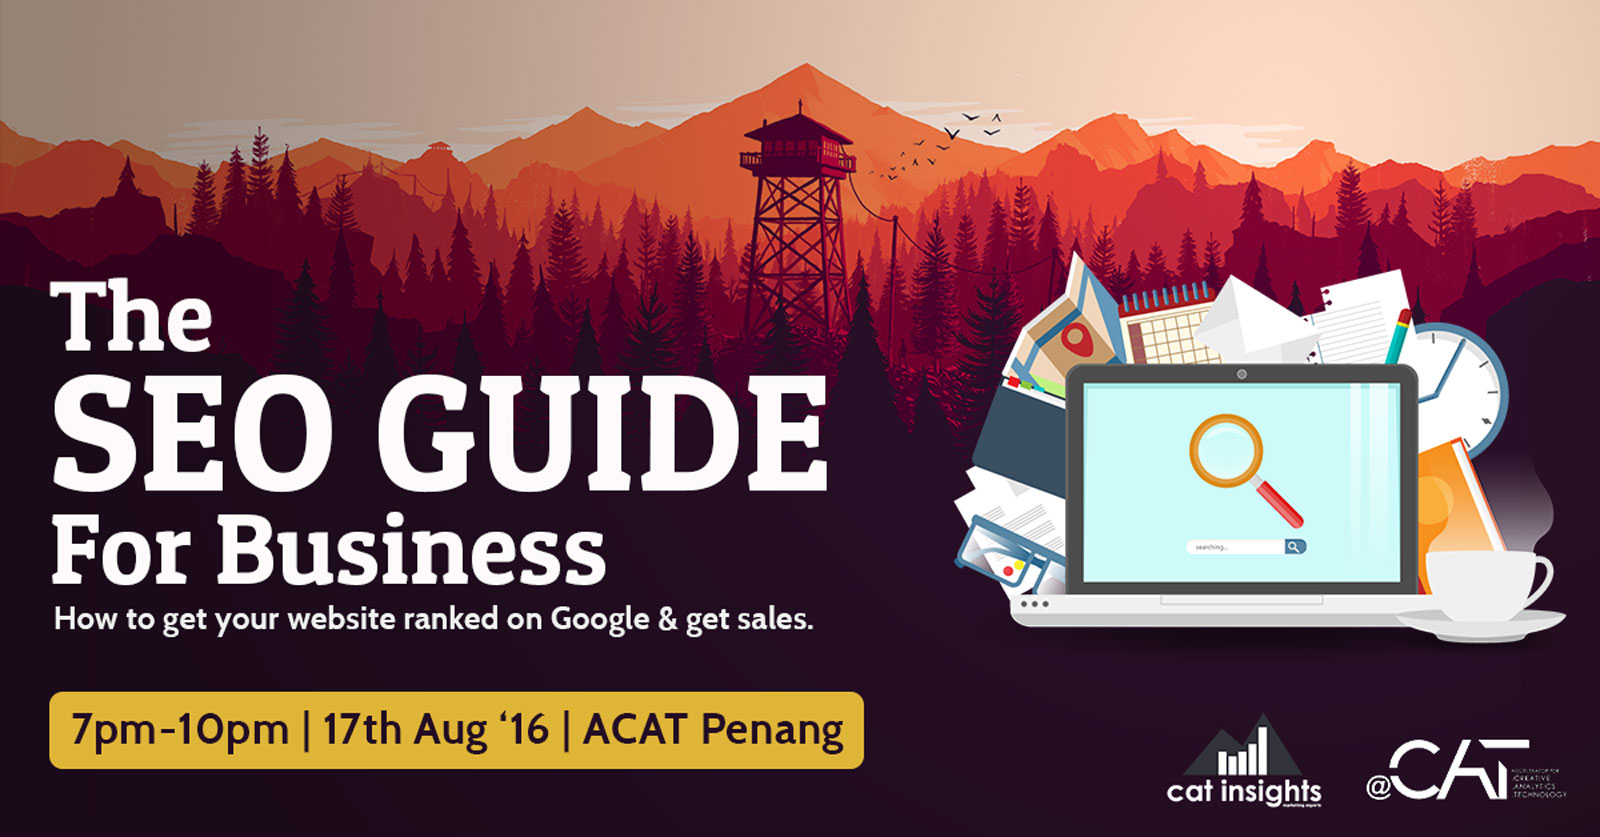 Event : The SEO Guide For Business Course at ACAT, Penang